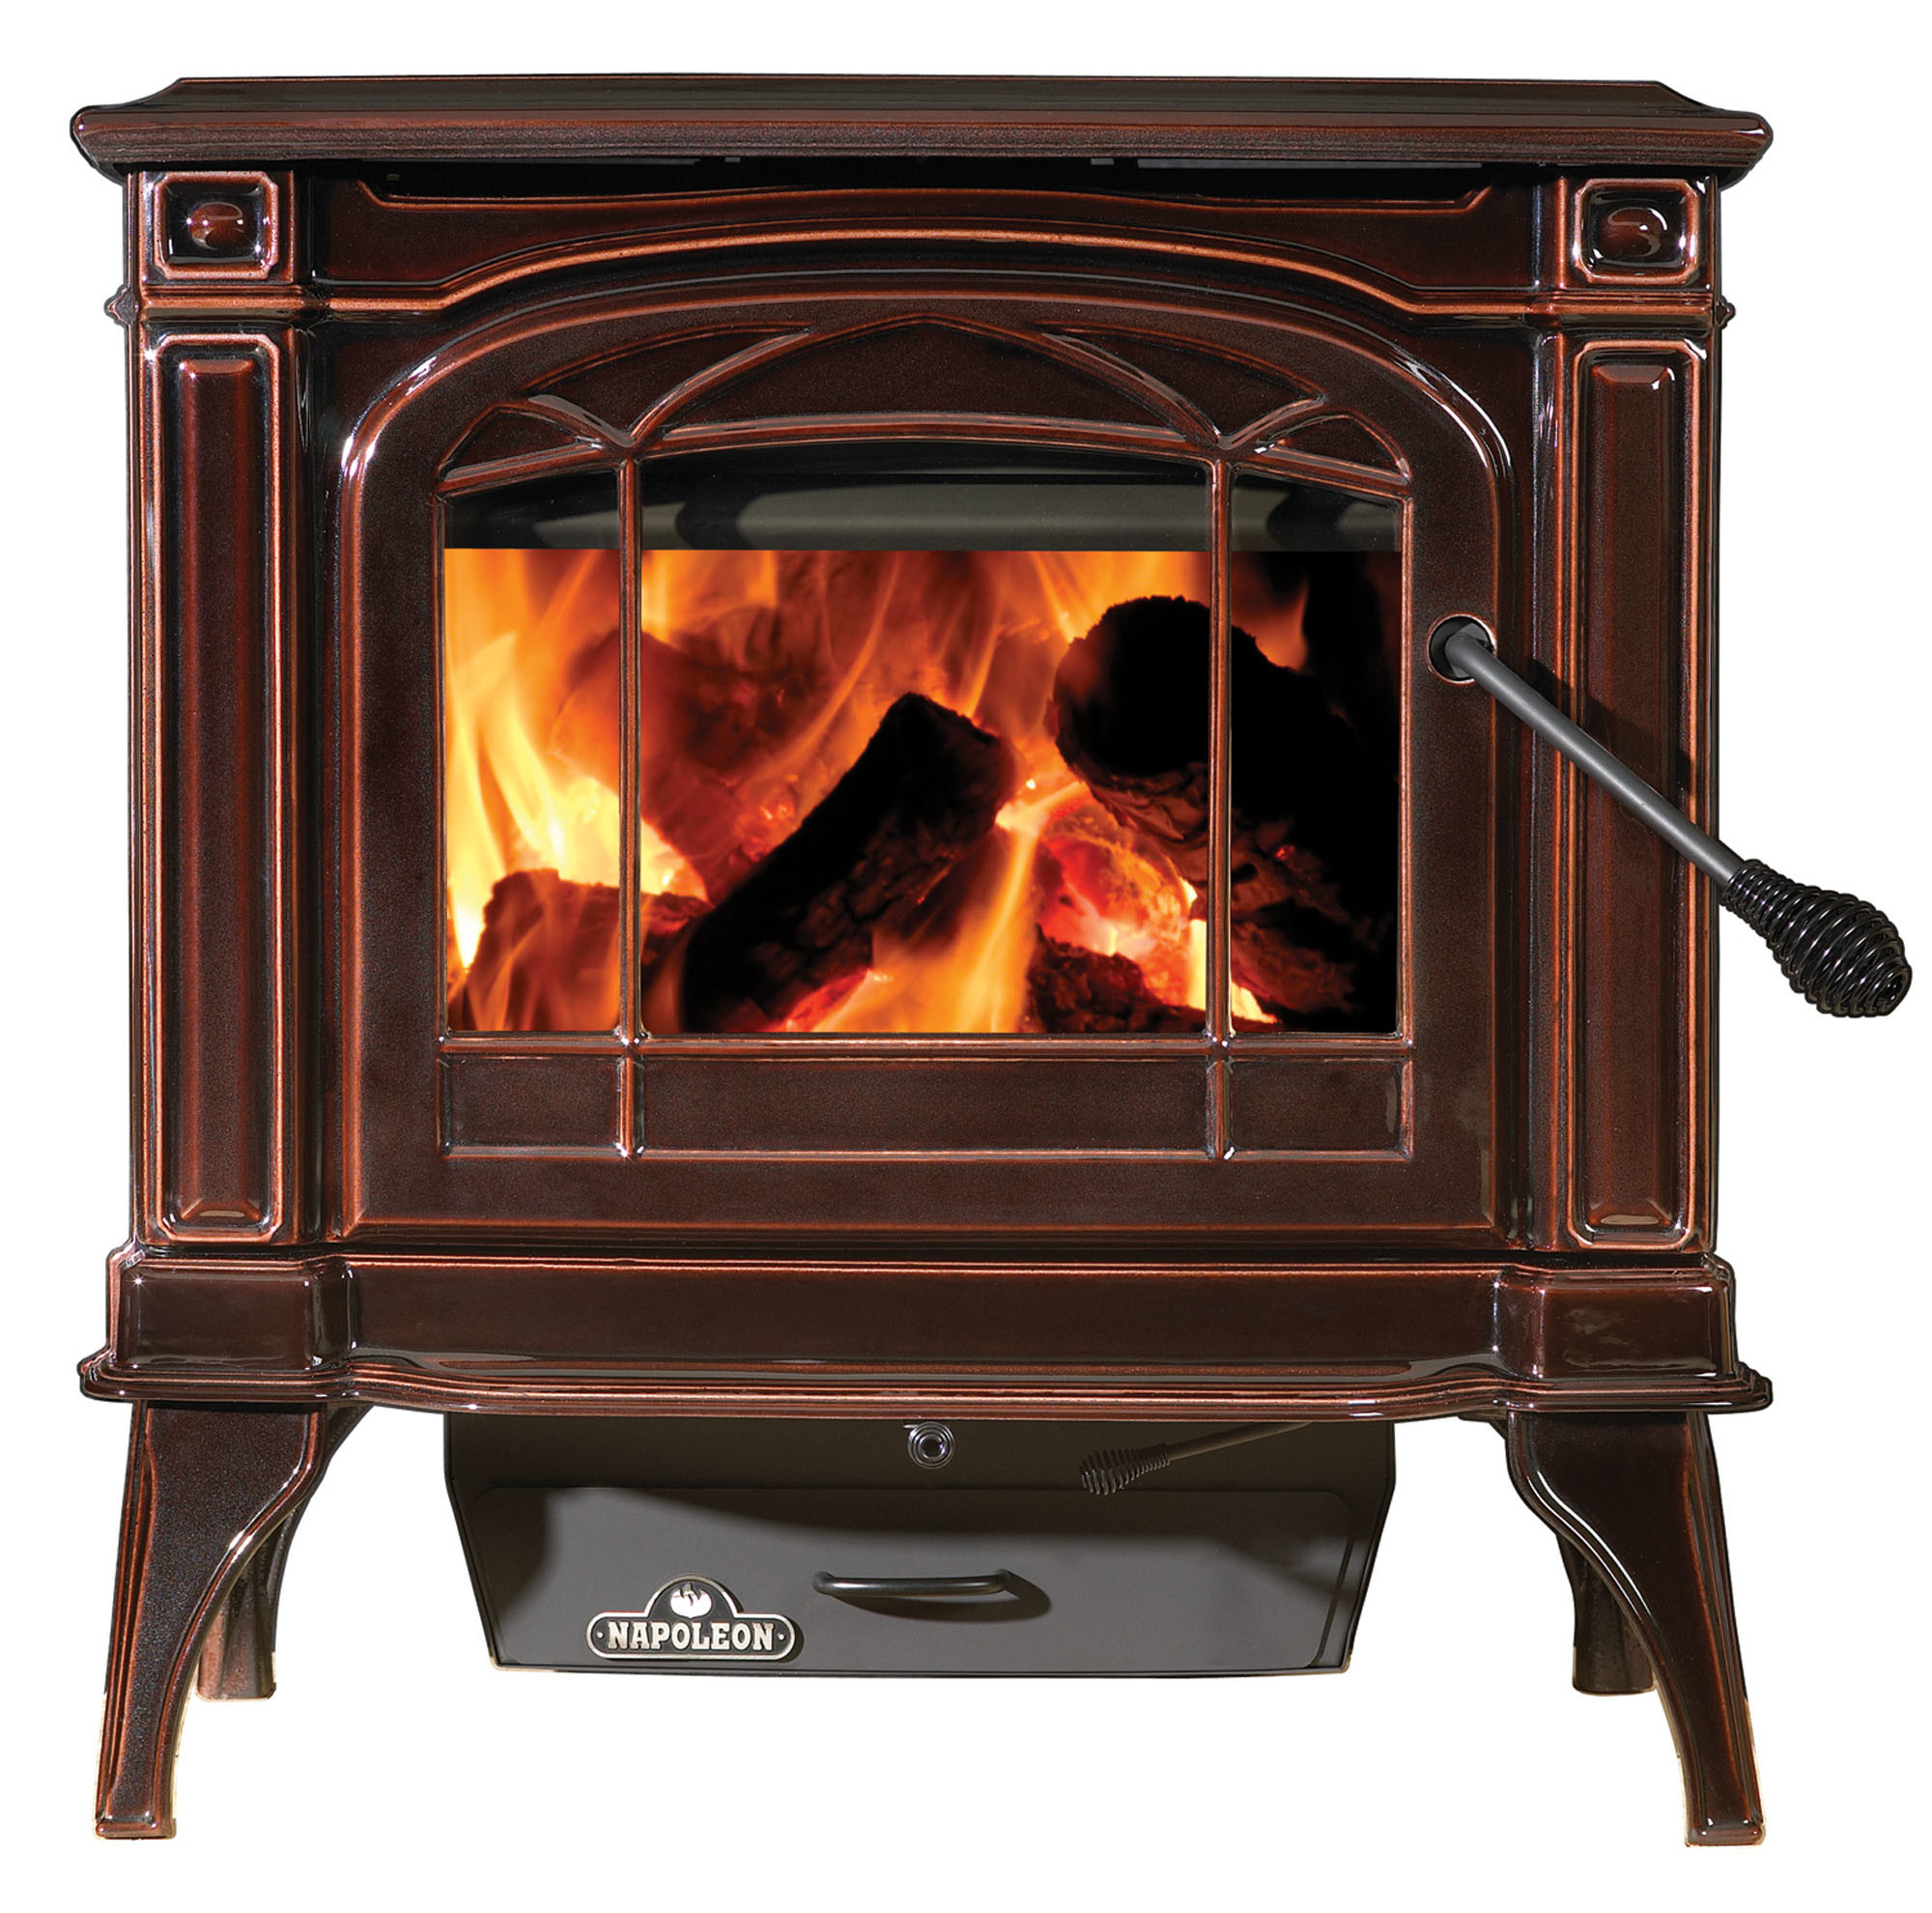 Napoleon 1100C-1 EPA 1.7 Cubic Foot Cast Iron Wood Burning Leg Mount Stove